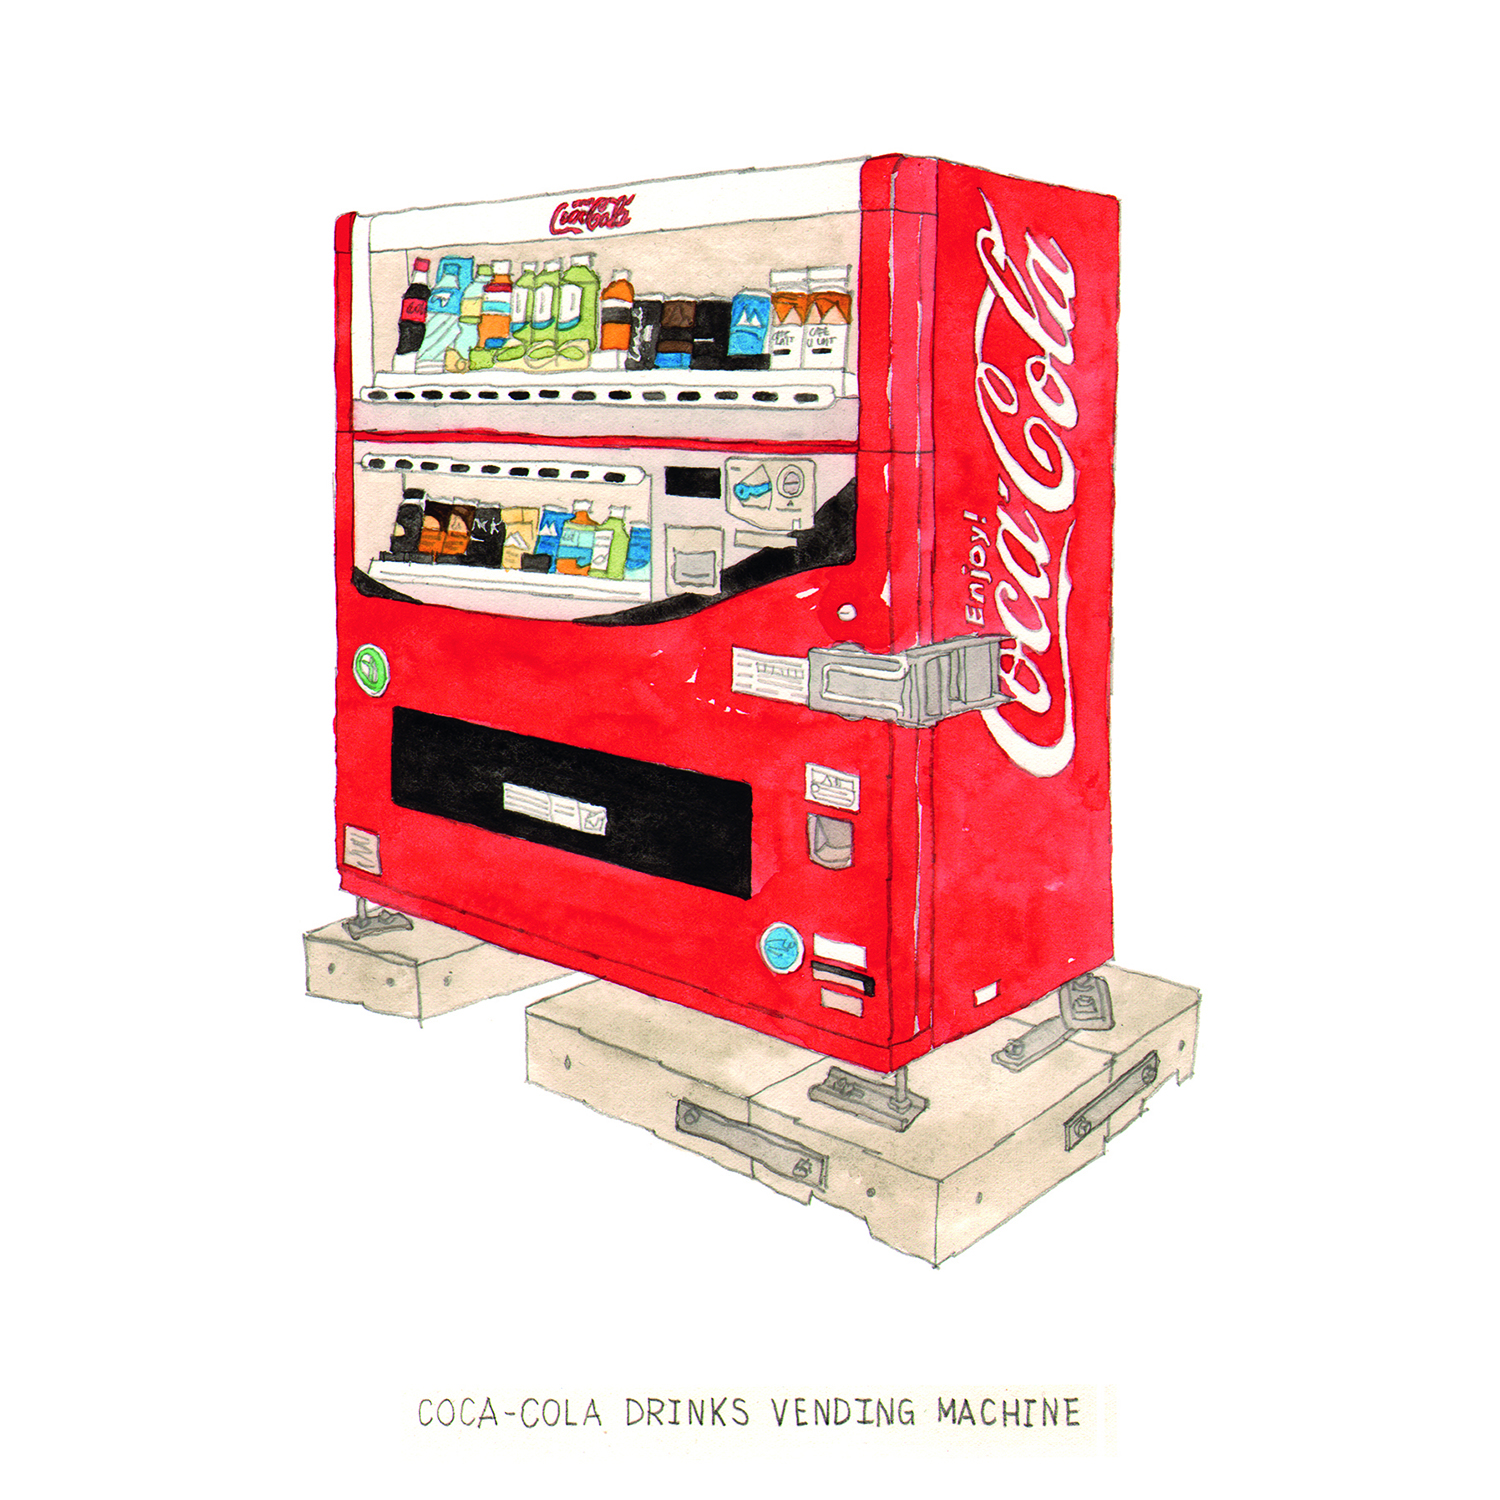 coca cola vending machine.jpg